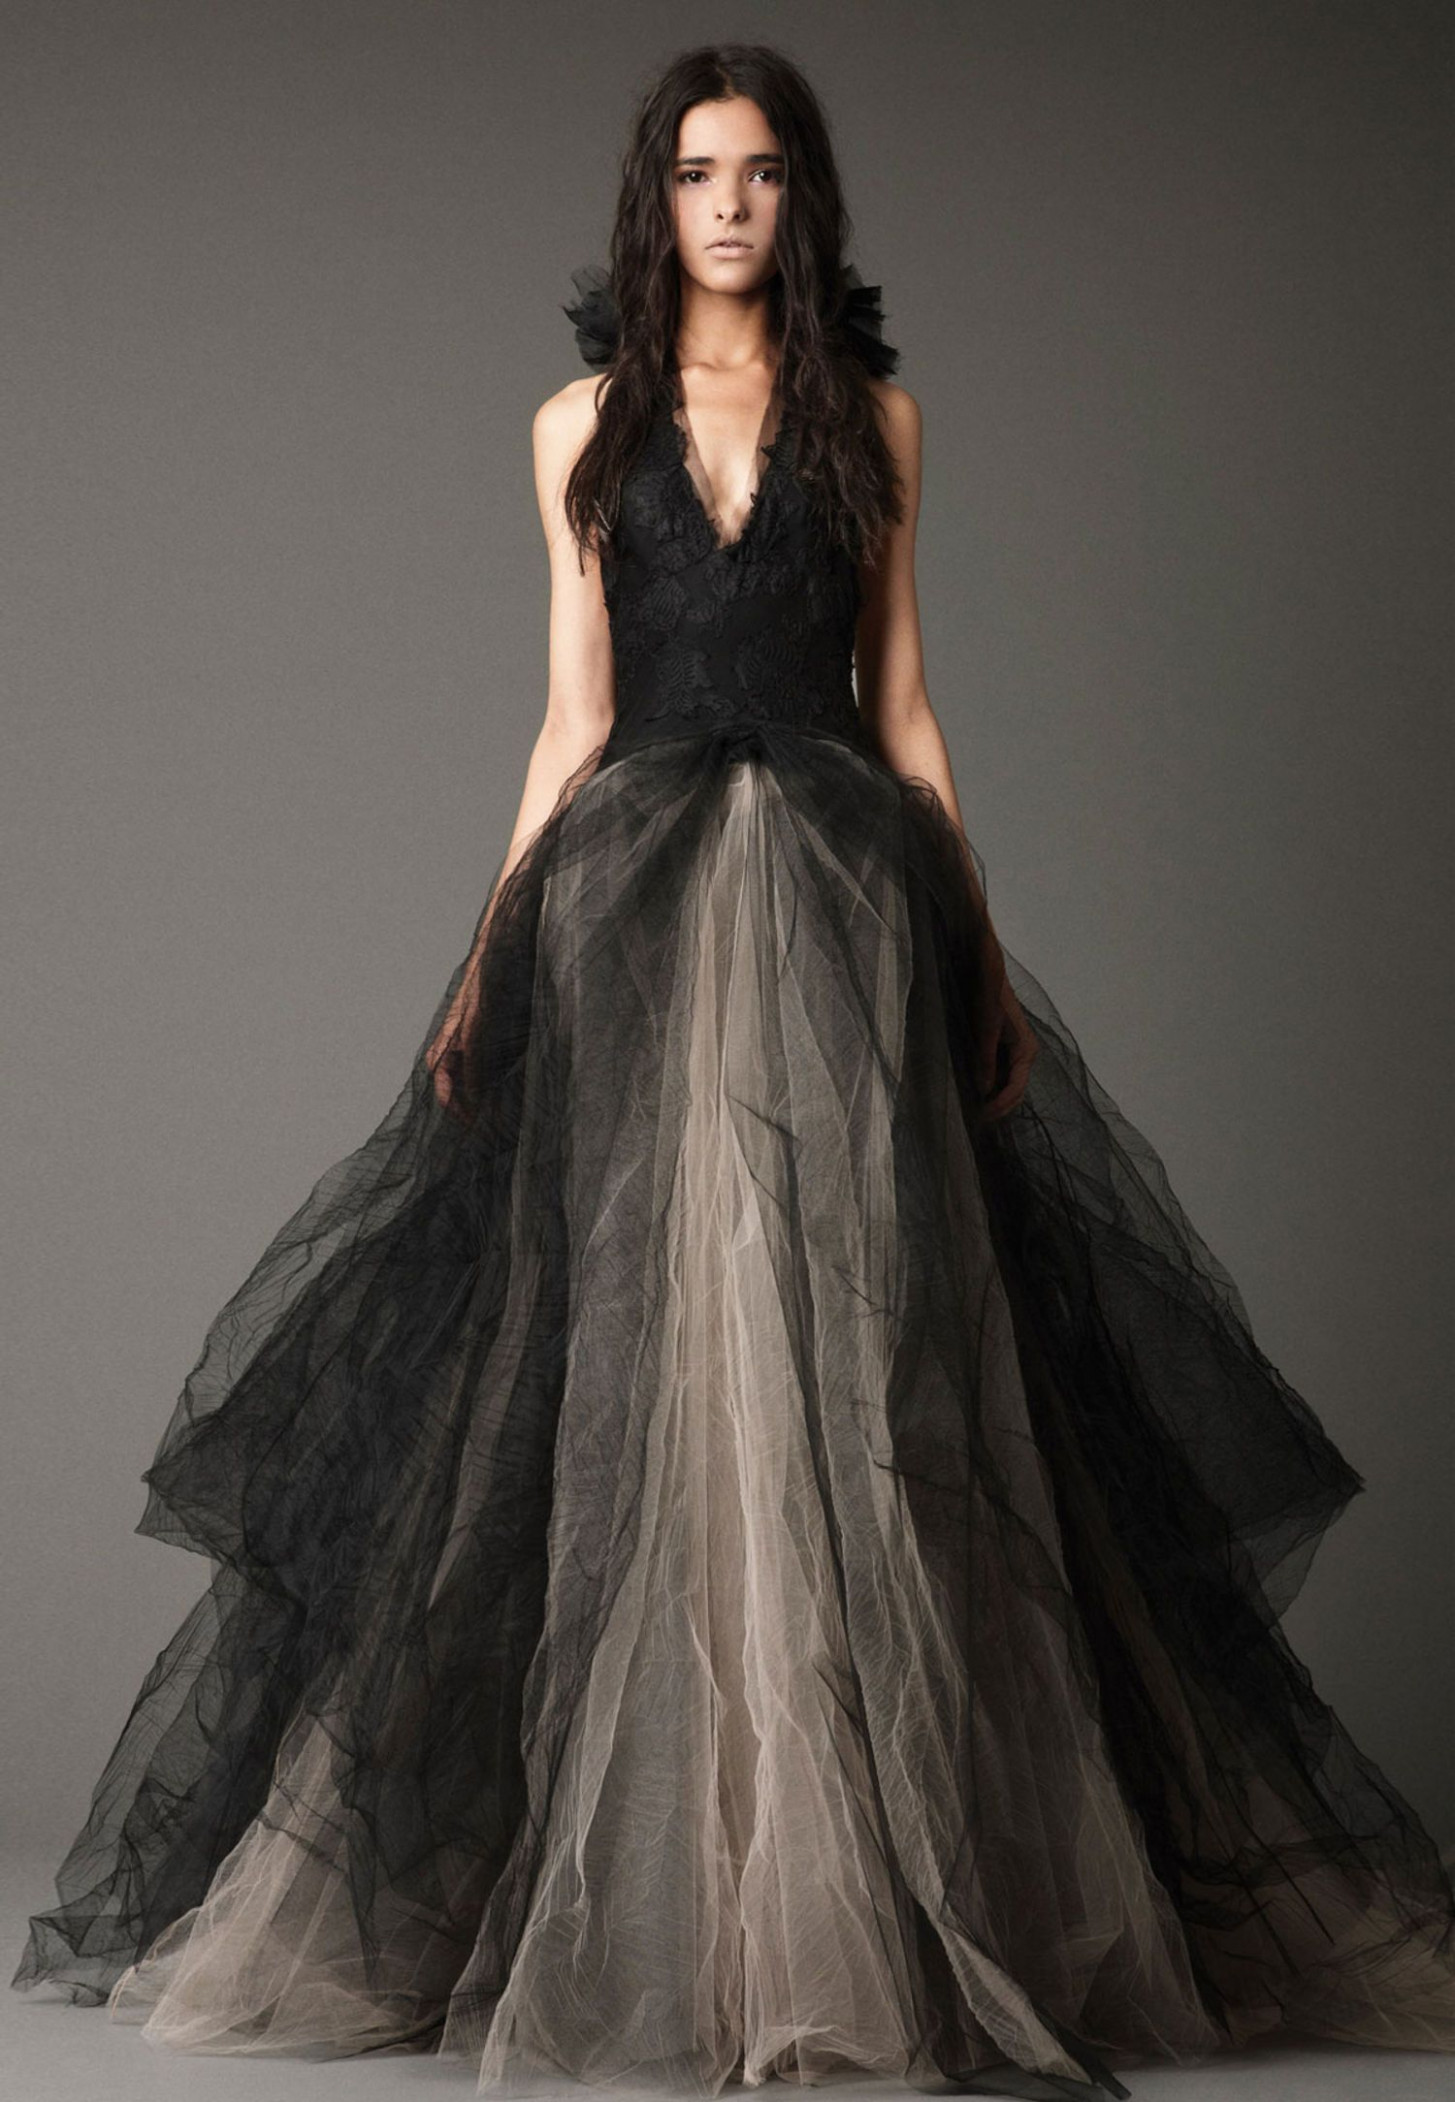 shenae grimes' wedding dress: the bride wore one of the black vera vera wang hochzeitskleid | Vera Wang Hochzeitskleid